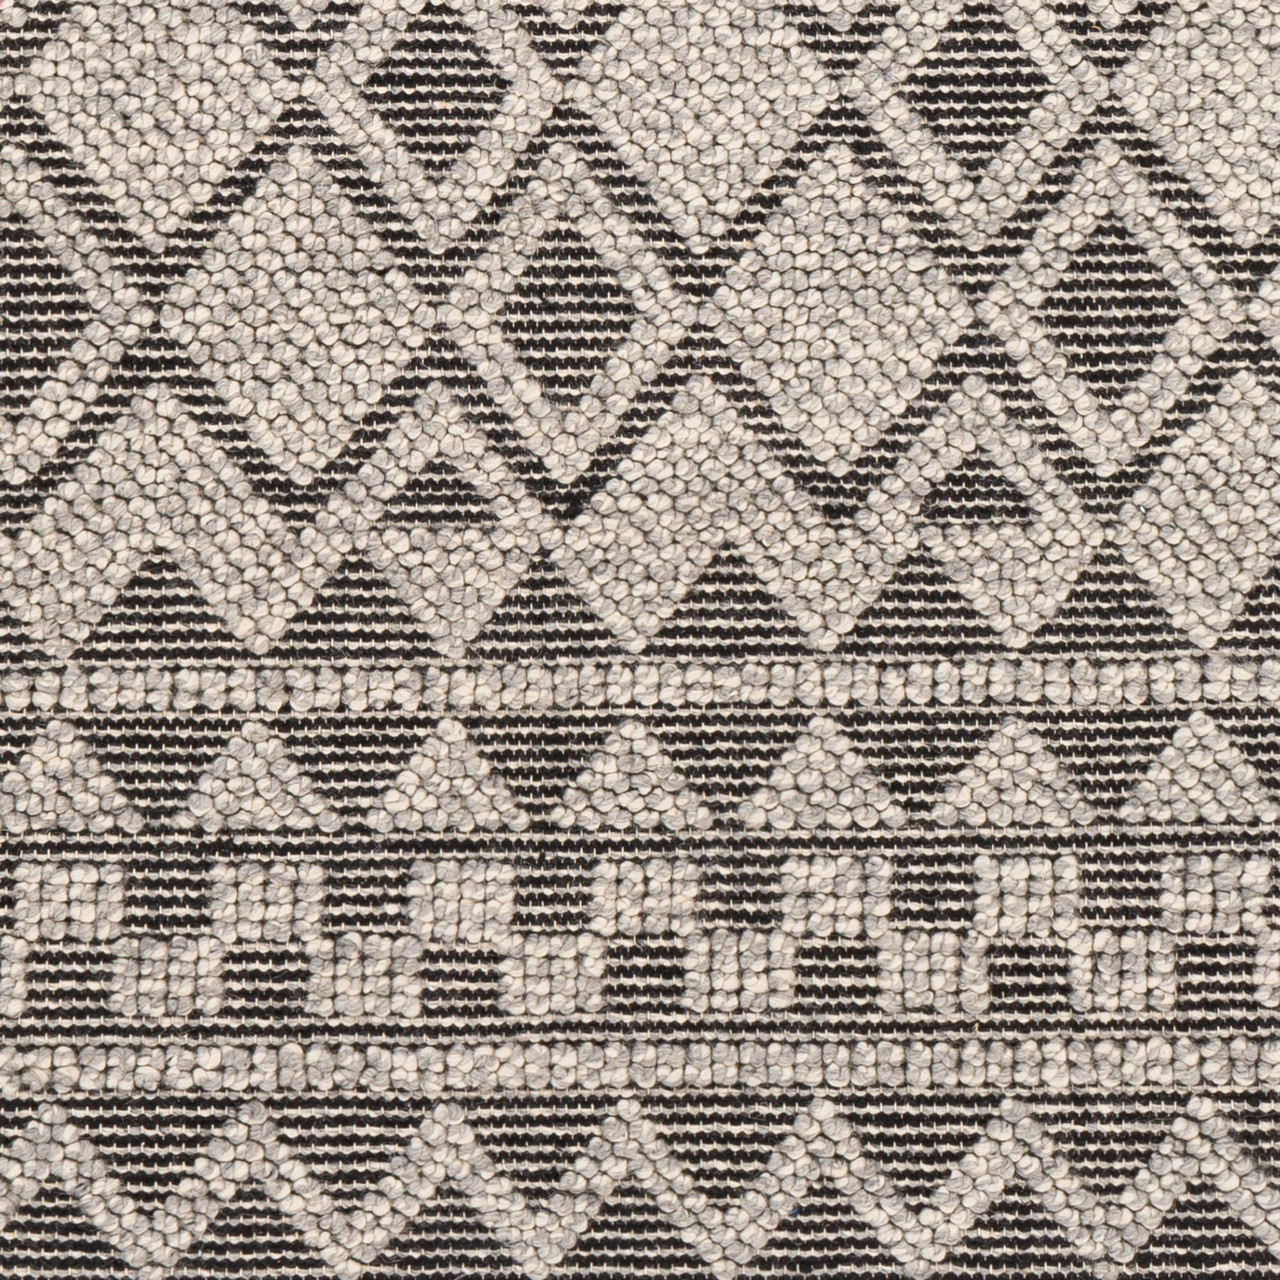 2 5 X 8 Geometric Patterned Black And Gray Rectangular Area Throw Rug Runner 33431209